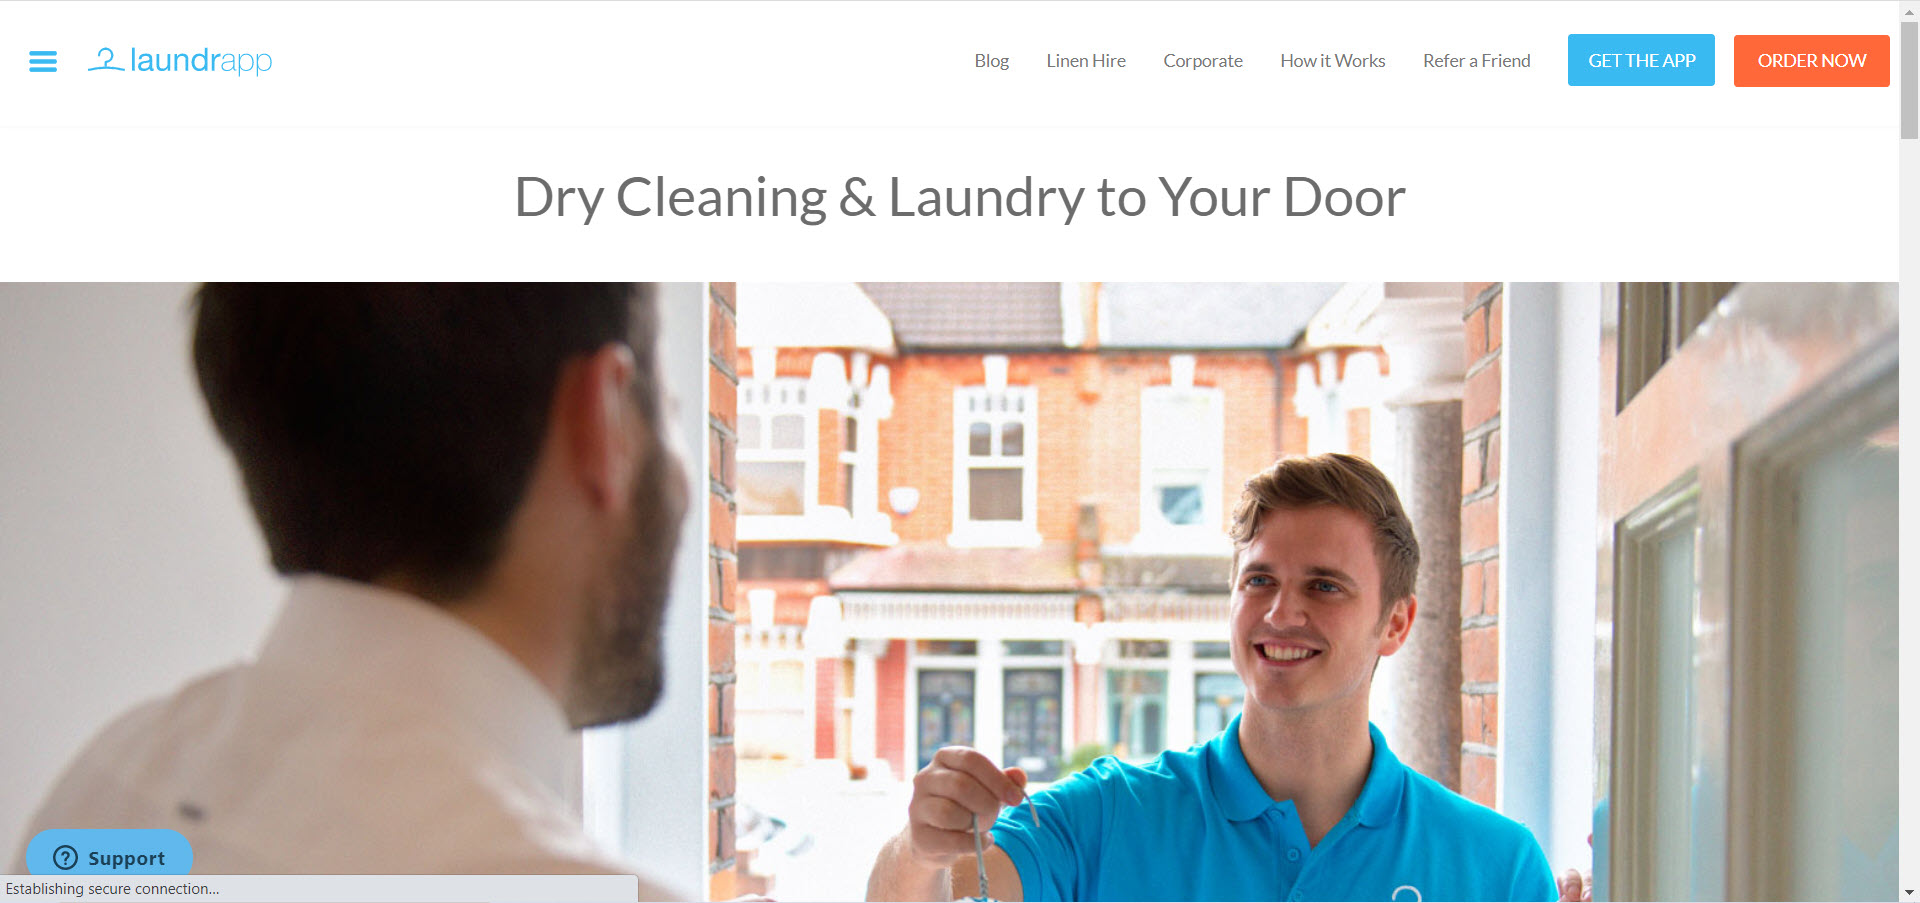 Cleaning Products Affiliate Programs - laundrapp